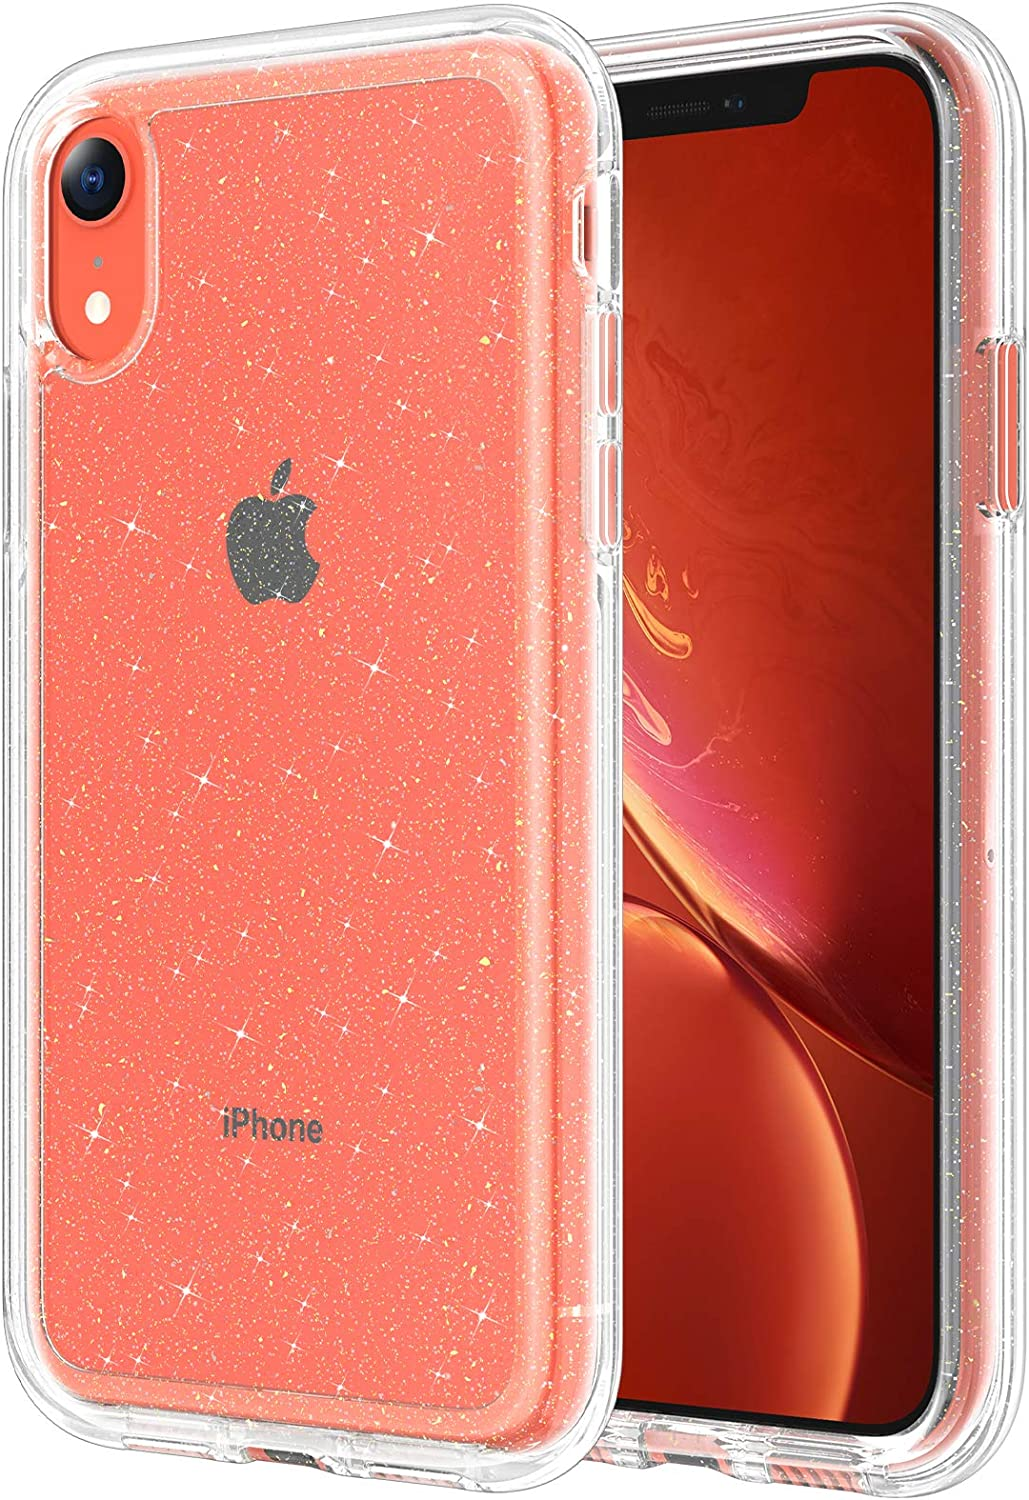 Maxdara for iPhone XR Glitter Case, iPhone XR Clear Case Women Girls Bling Sparkle Shockproof Protective Cover Thin Slim Crystal Glitter Clear Case for iPhone XR, Glitter Clear